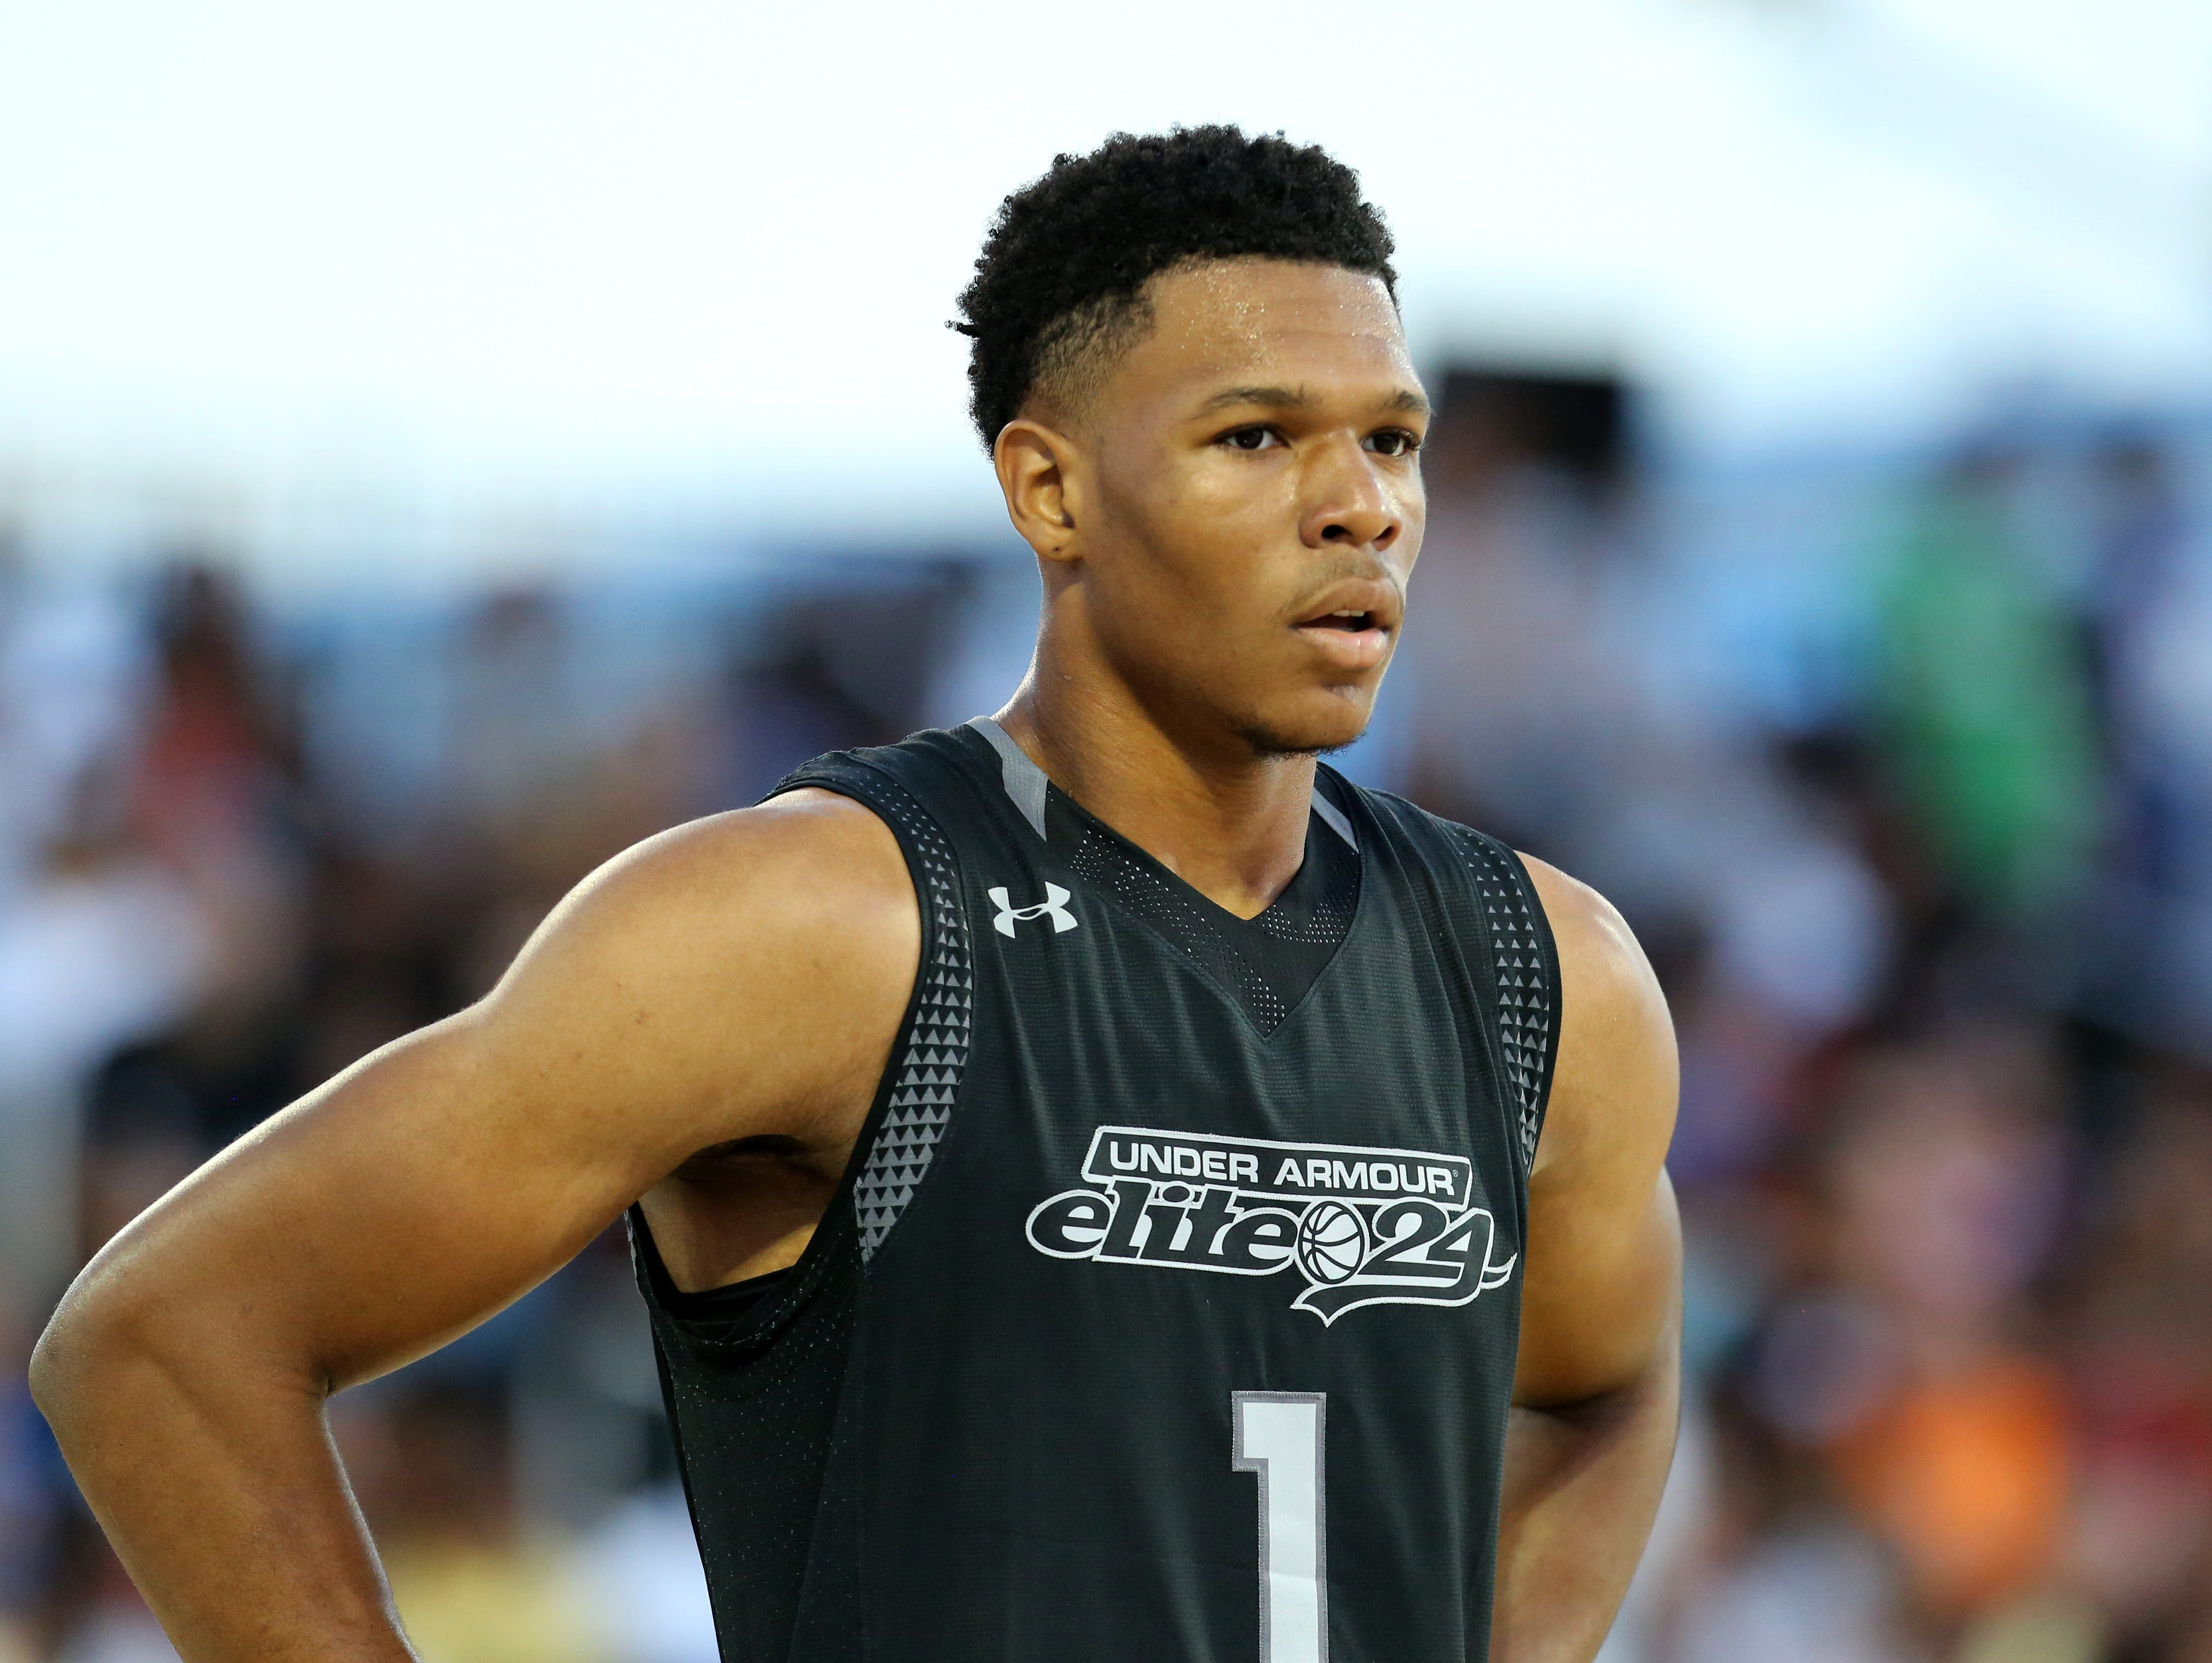 IMG Academy's Trevon Duval, pictured here at the Under Armour Elite 24 game in August, is ranked as the nation's top point guard by ESPN.